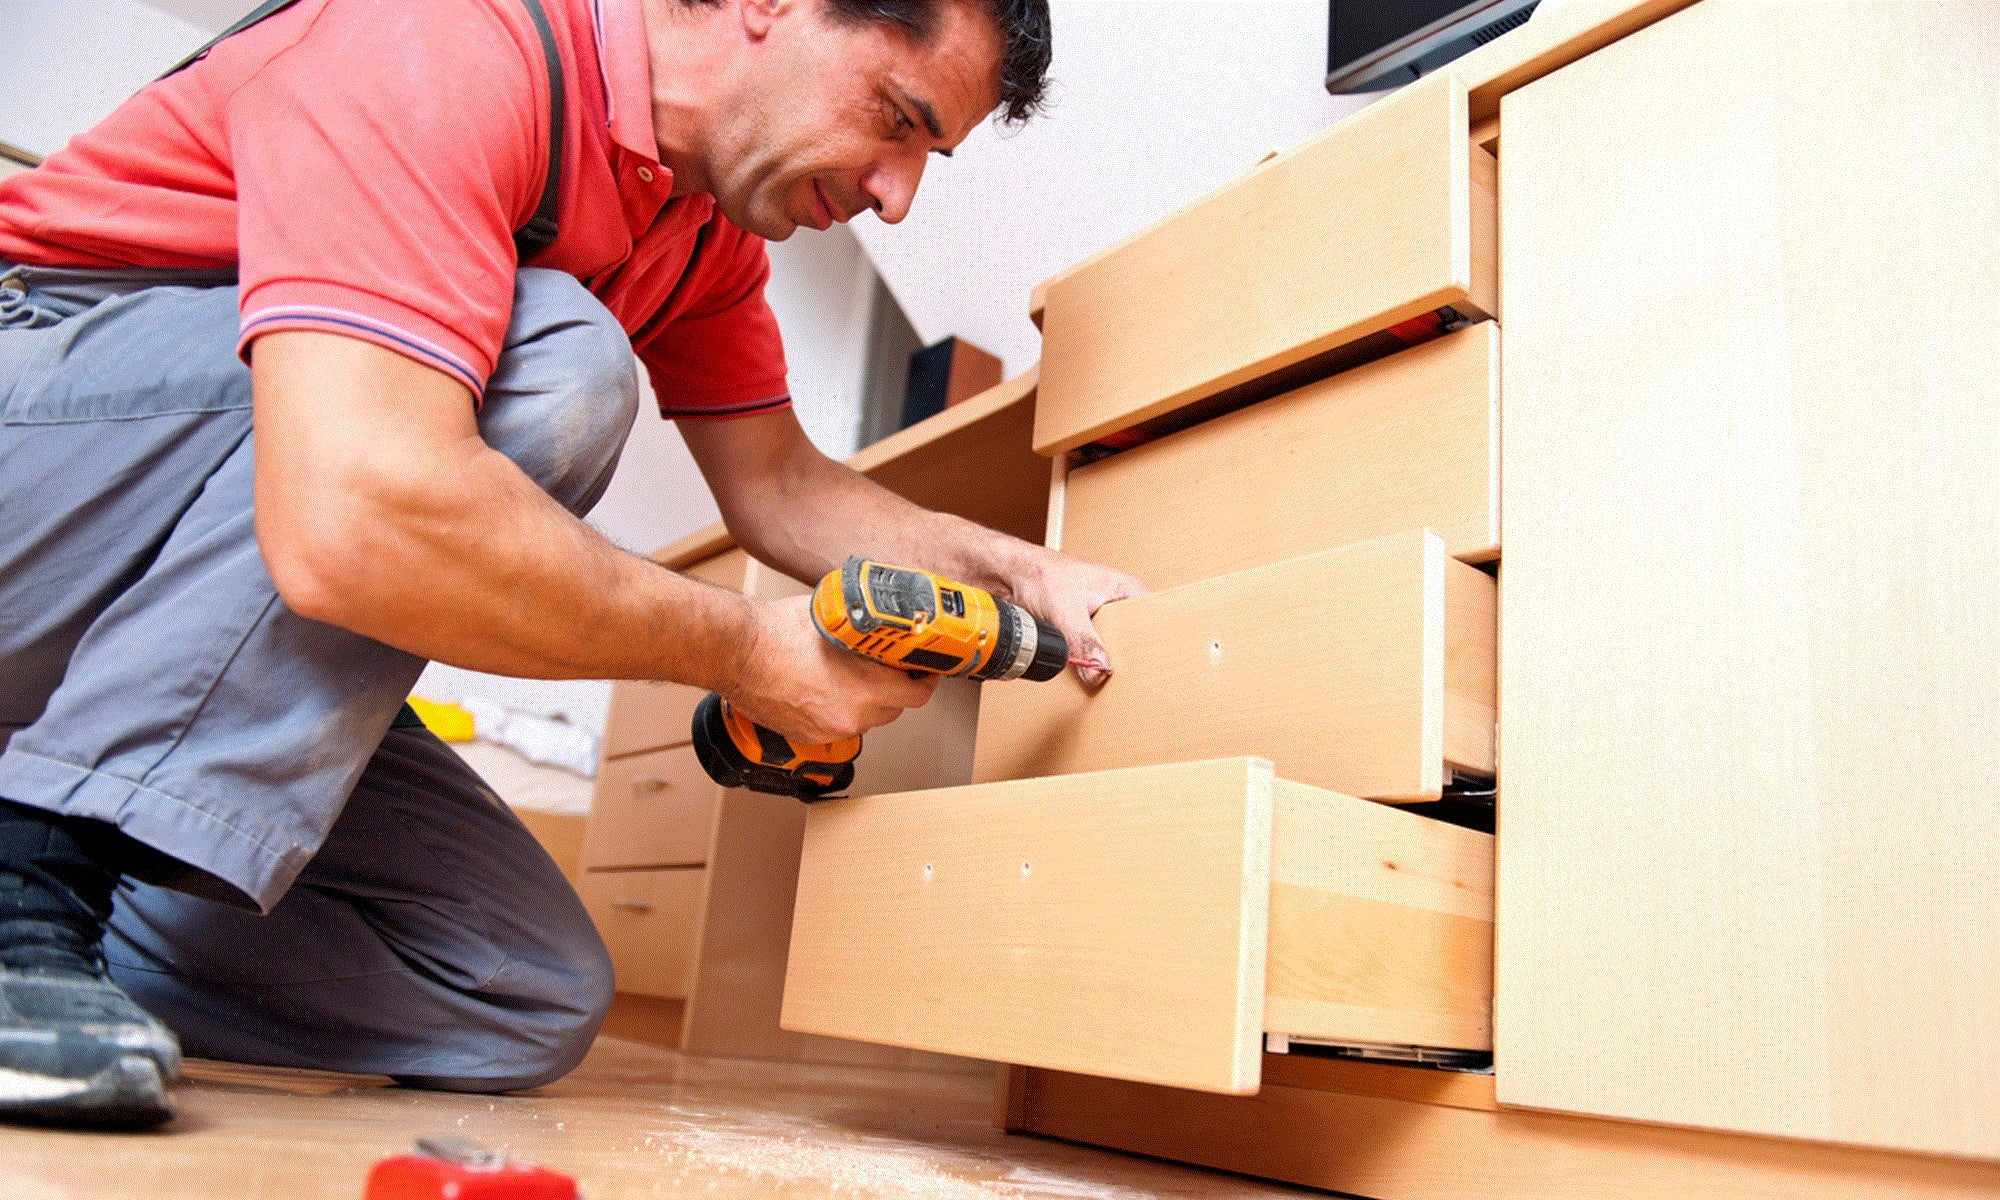 7 Hacks for Assembling Furniture